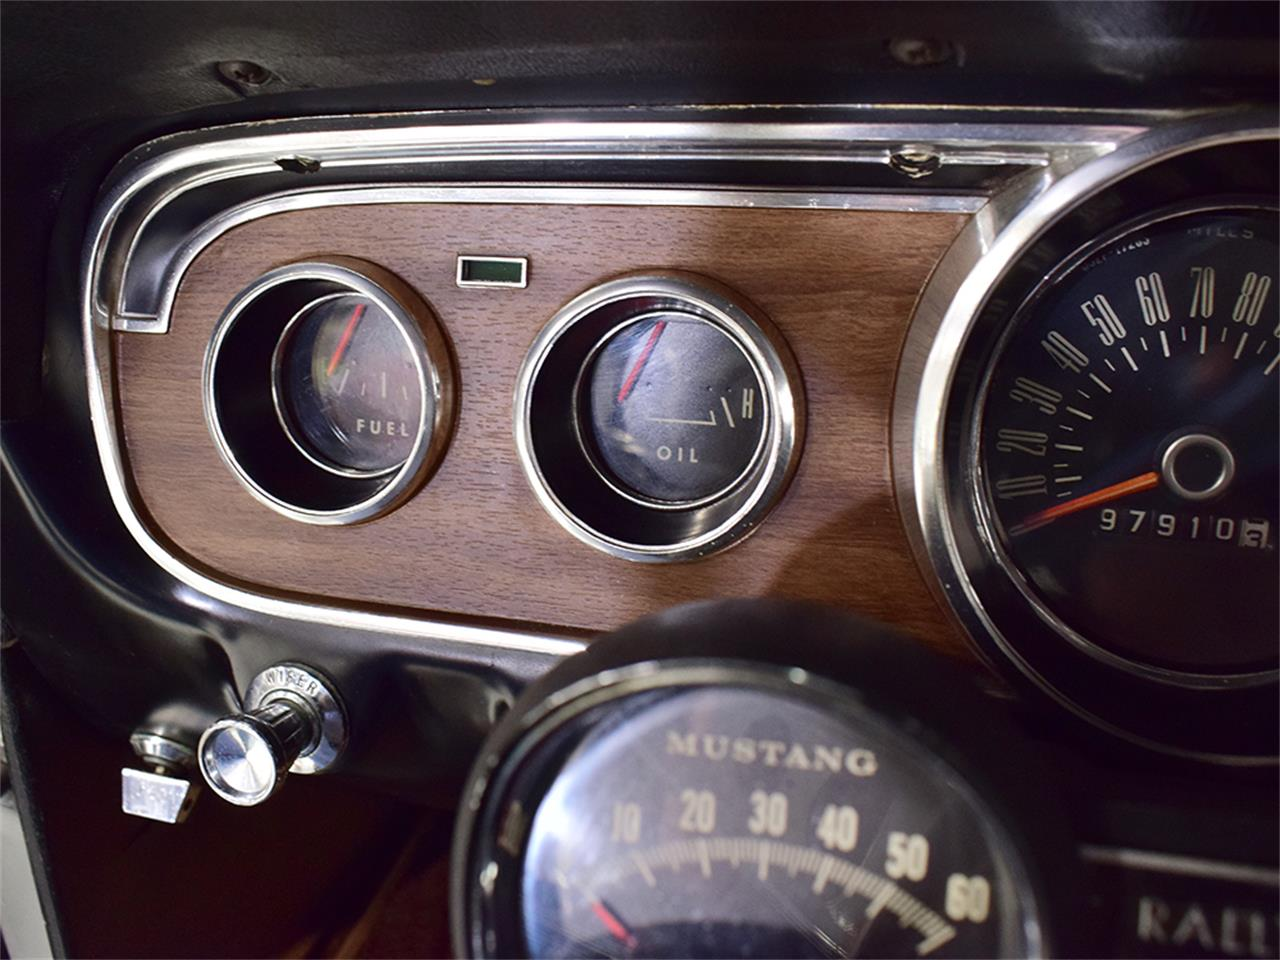 Large Picture of '66 Mustang GT Offered by Harwood Motors, LTD. - Q0S5